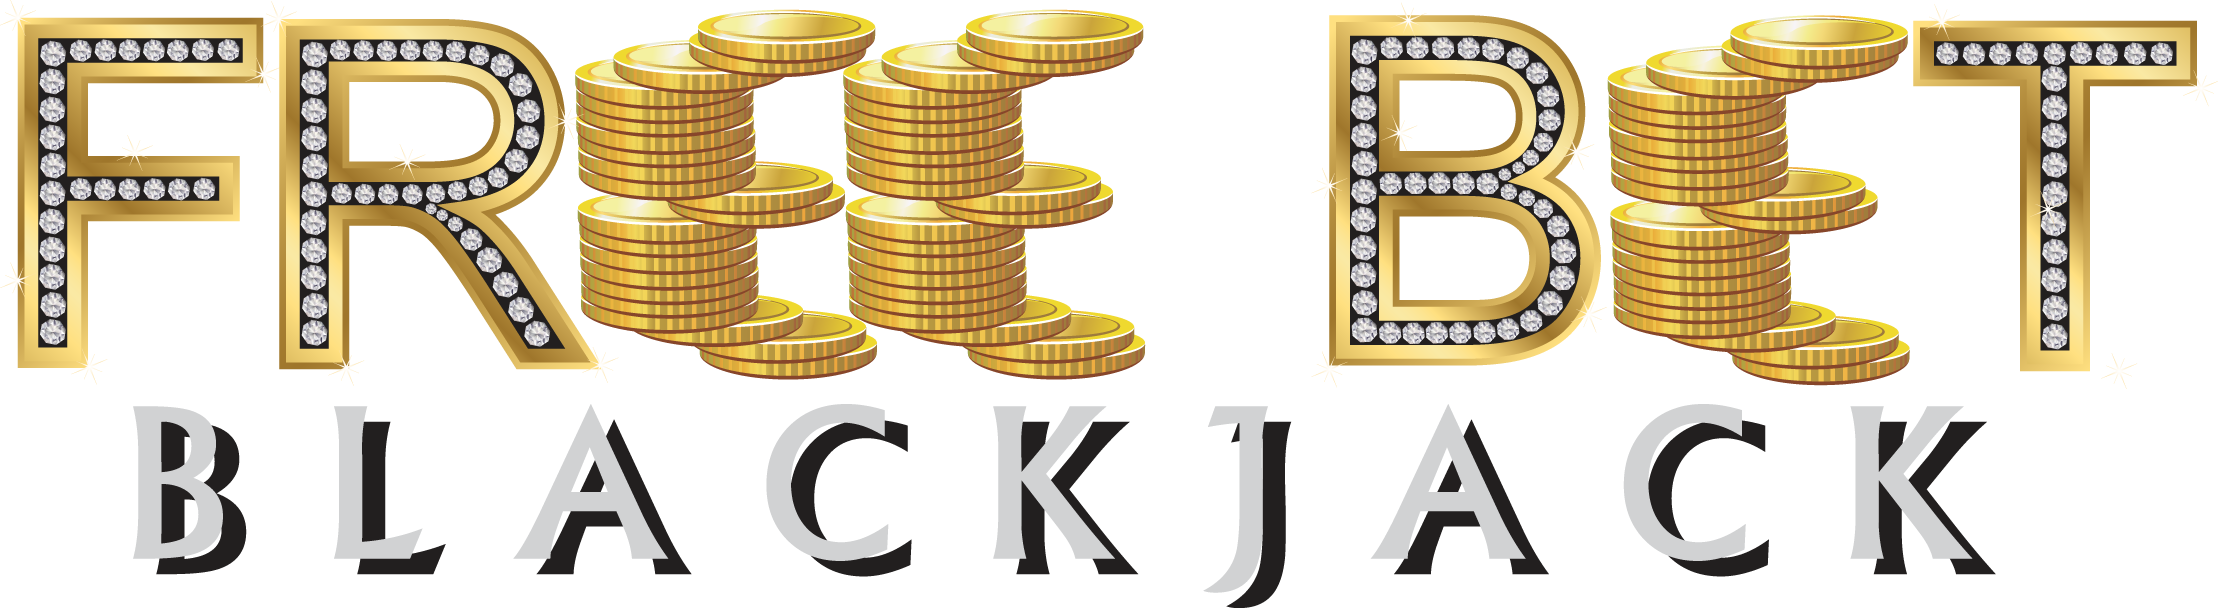 Free Bet BlackJack at Boot Hill Casino